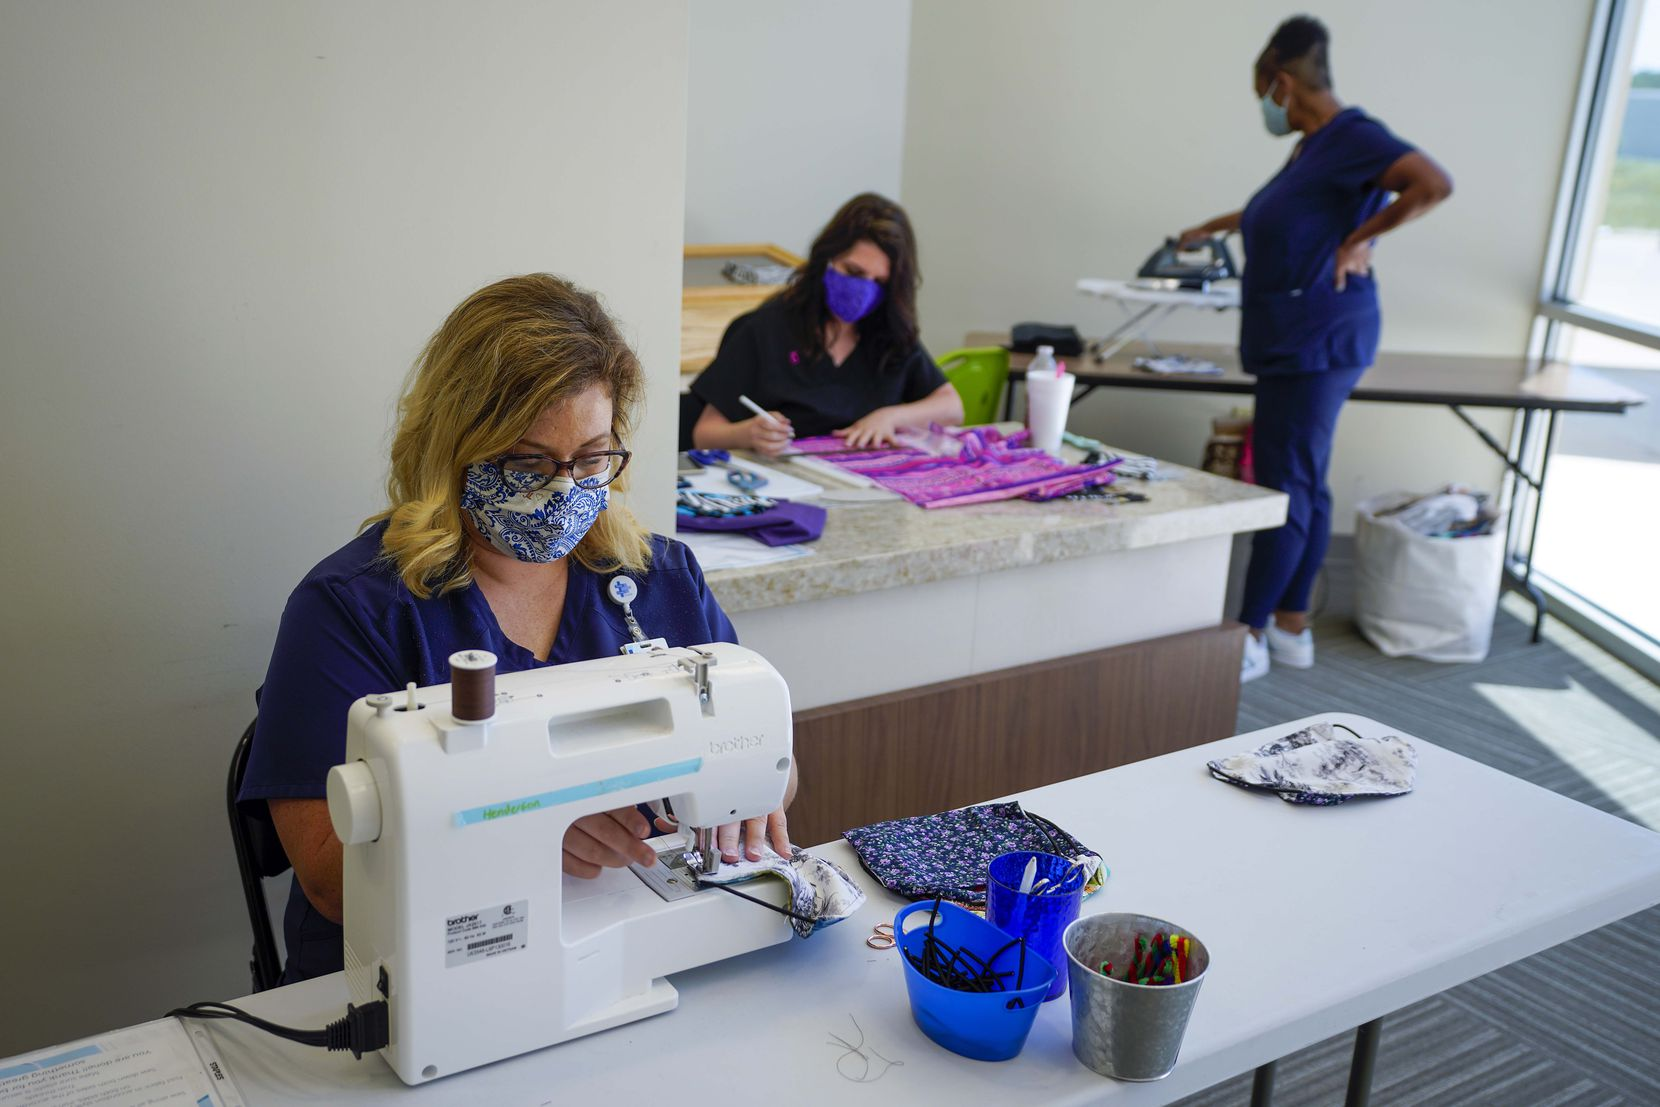 Faith Community Hospital staff members (from left) Mikey McBride, Sarah Bullock and Dionne Collins make face masks at the hospital in Jacksboro.